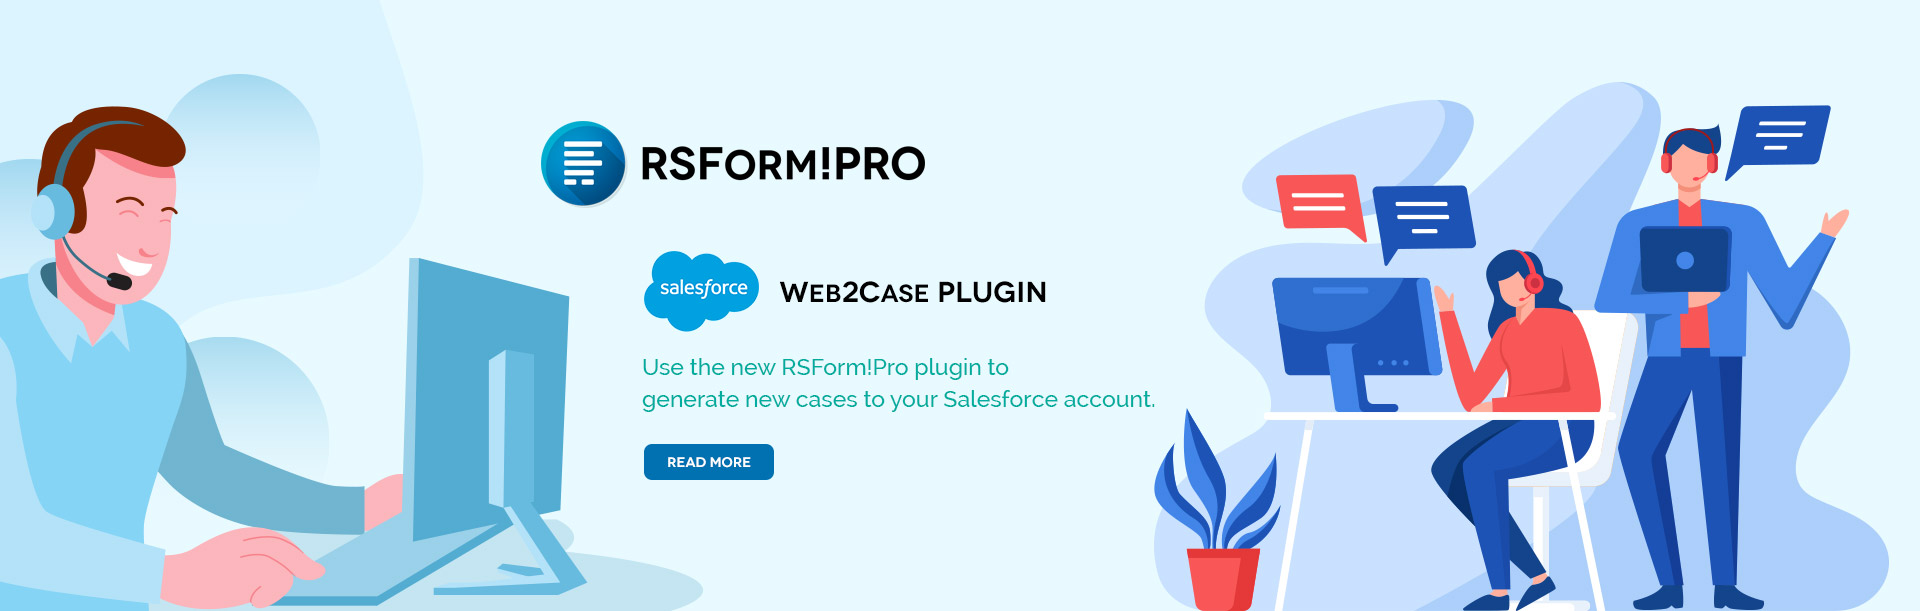 RSForm!Pro Salesforce Web2Case plugin